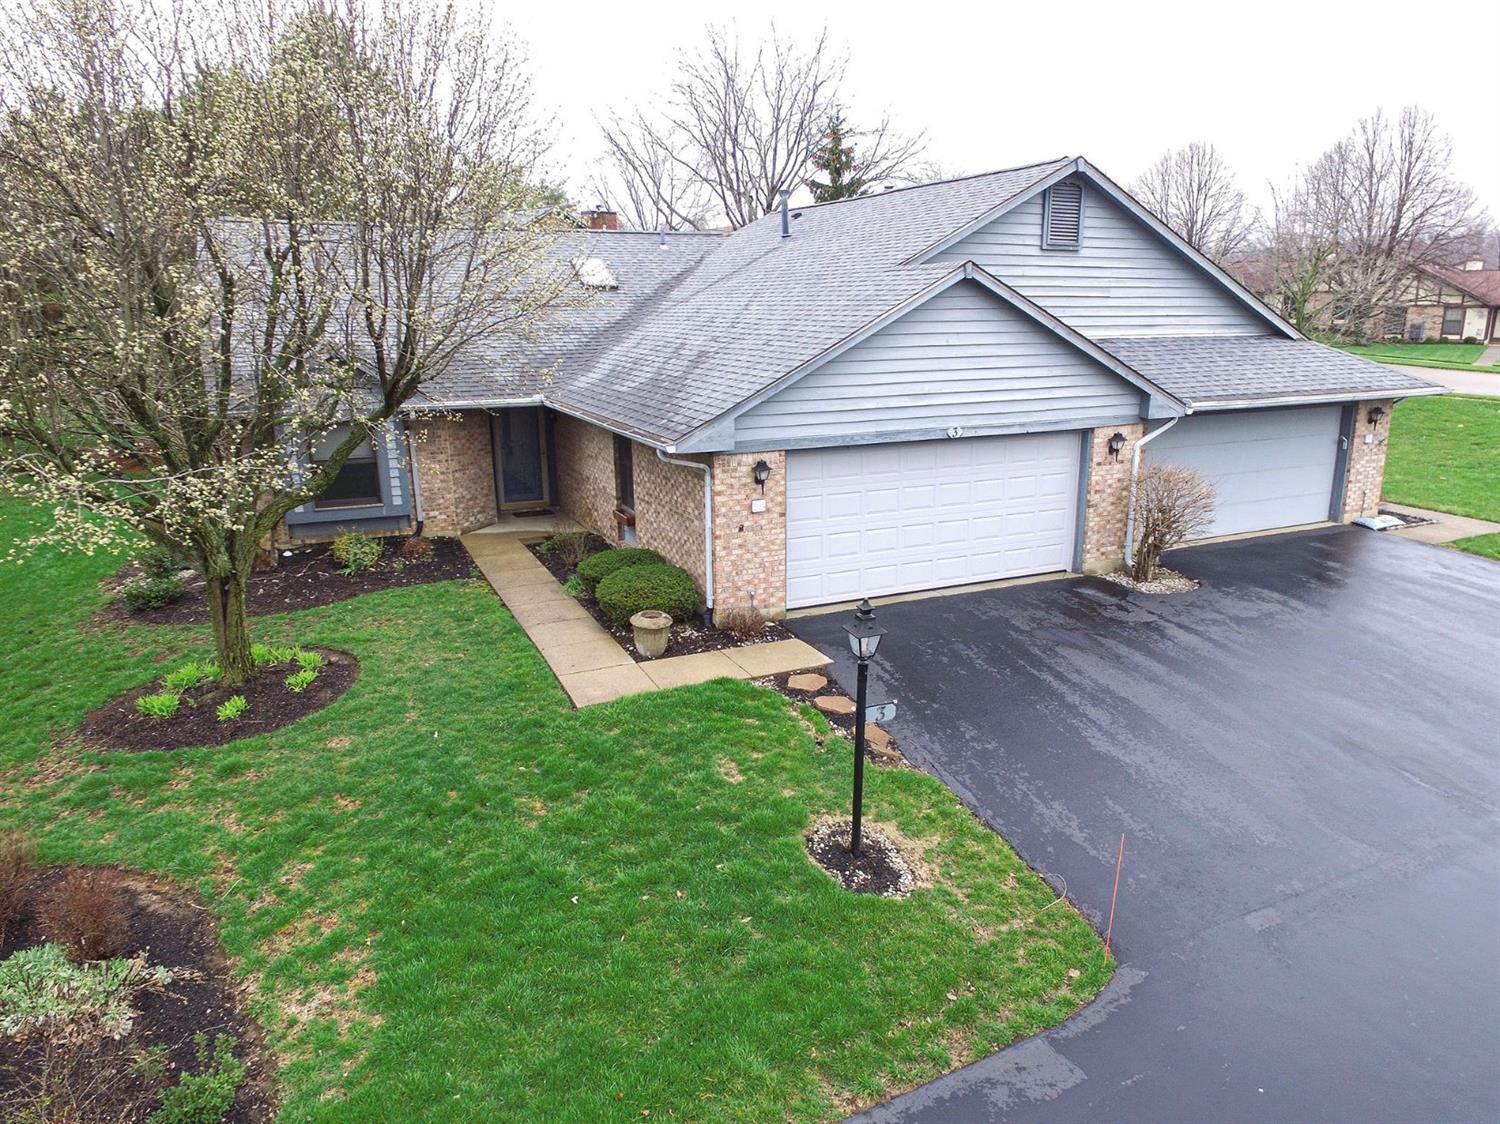 Property for sale at 3 Pheasant Run Circle, Springboro,  Ohio 45066